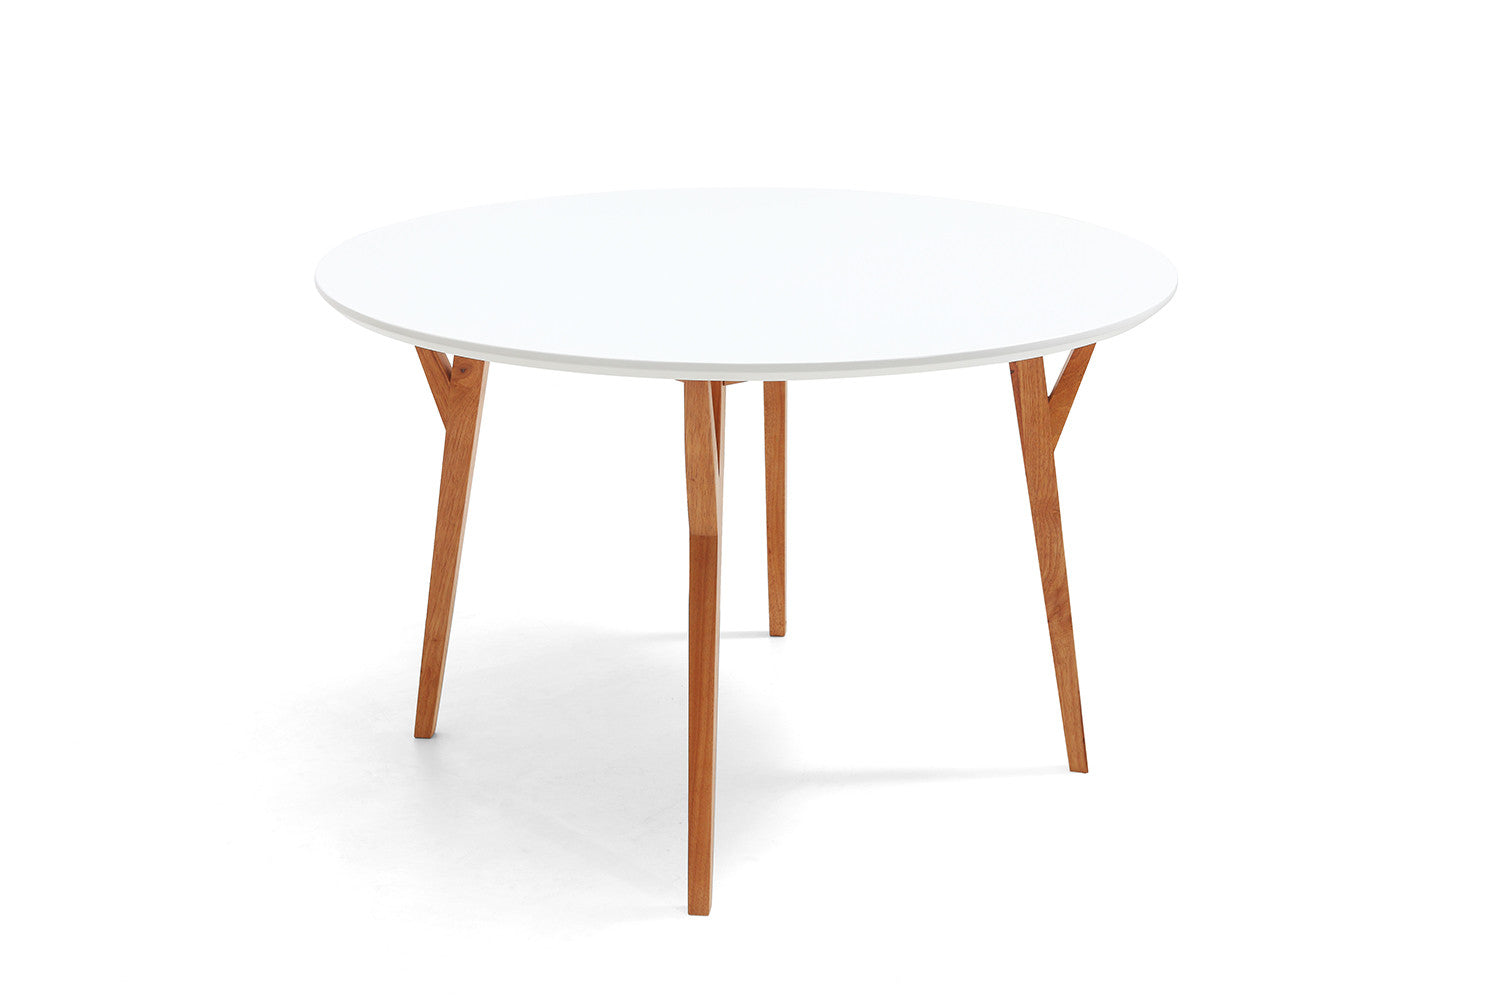 Table de salle manger ronde design scandinave moesa for Design a table